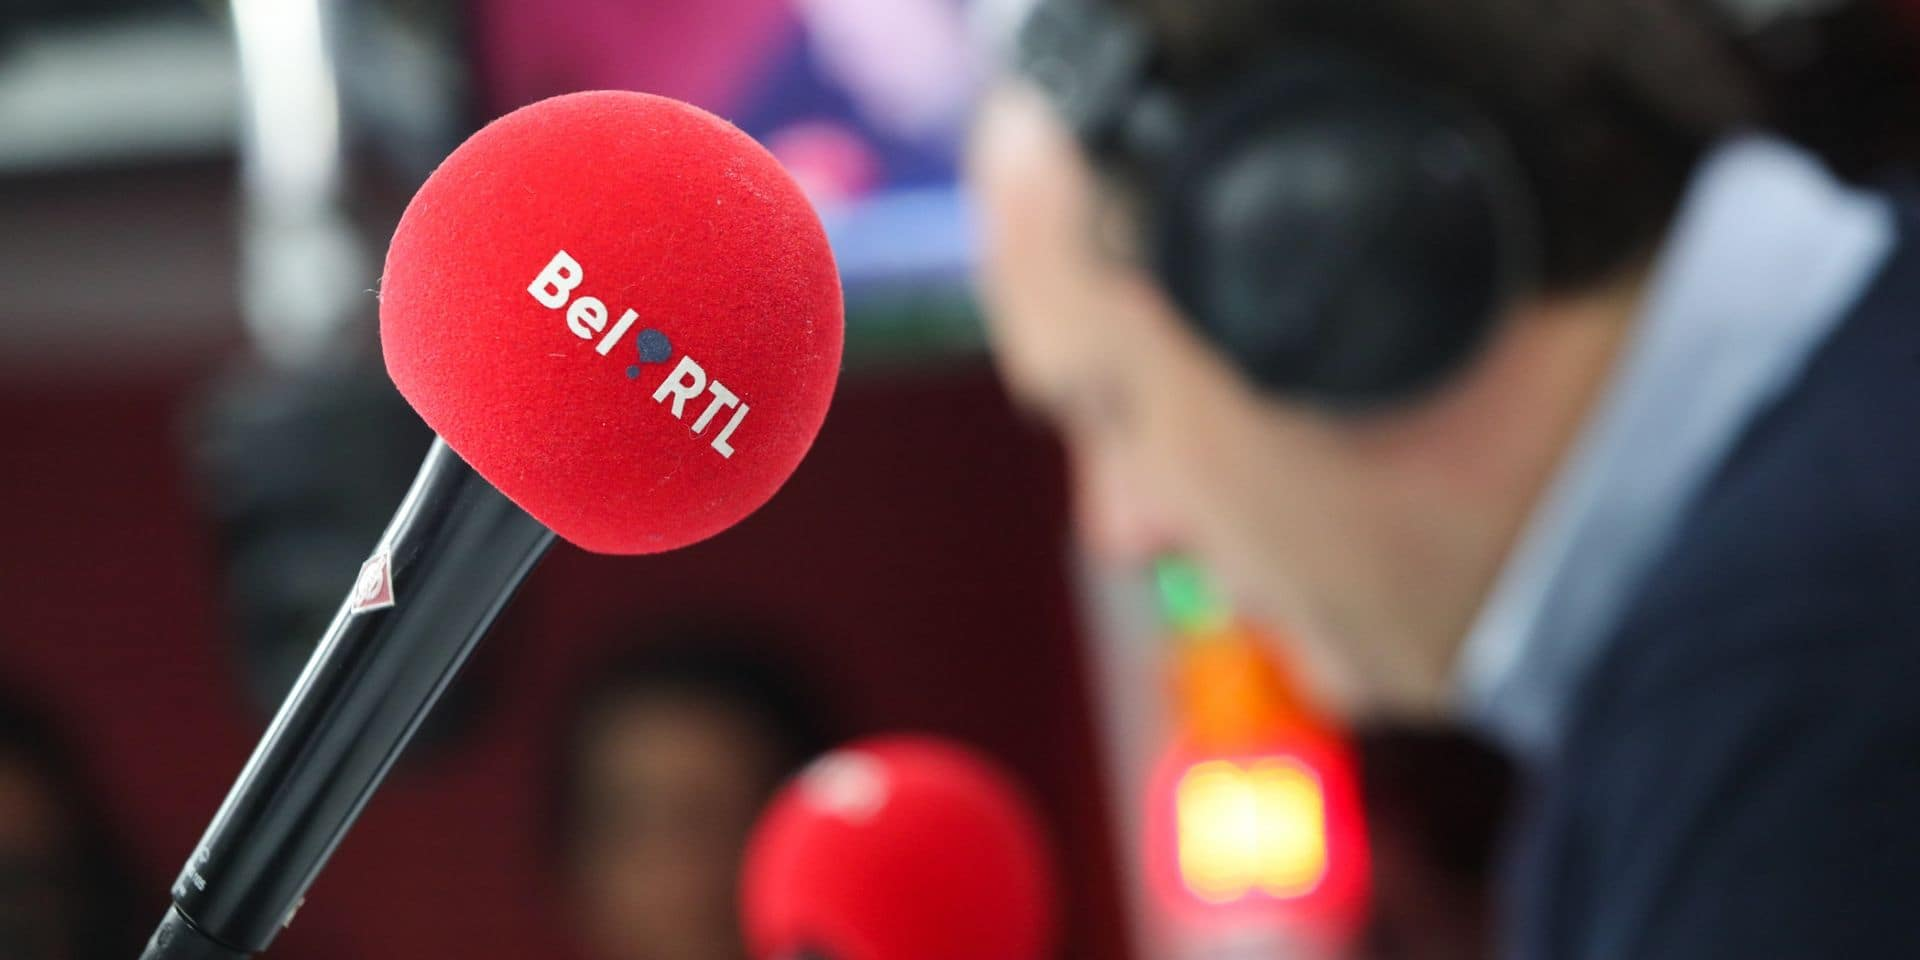 Audiences radio: Bel RTL prend l'eau